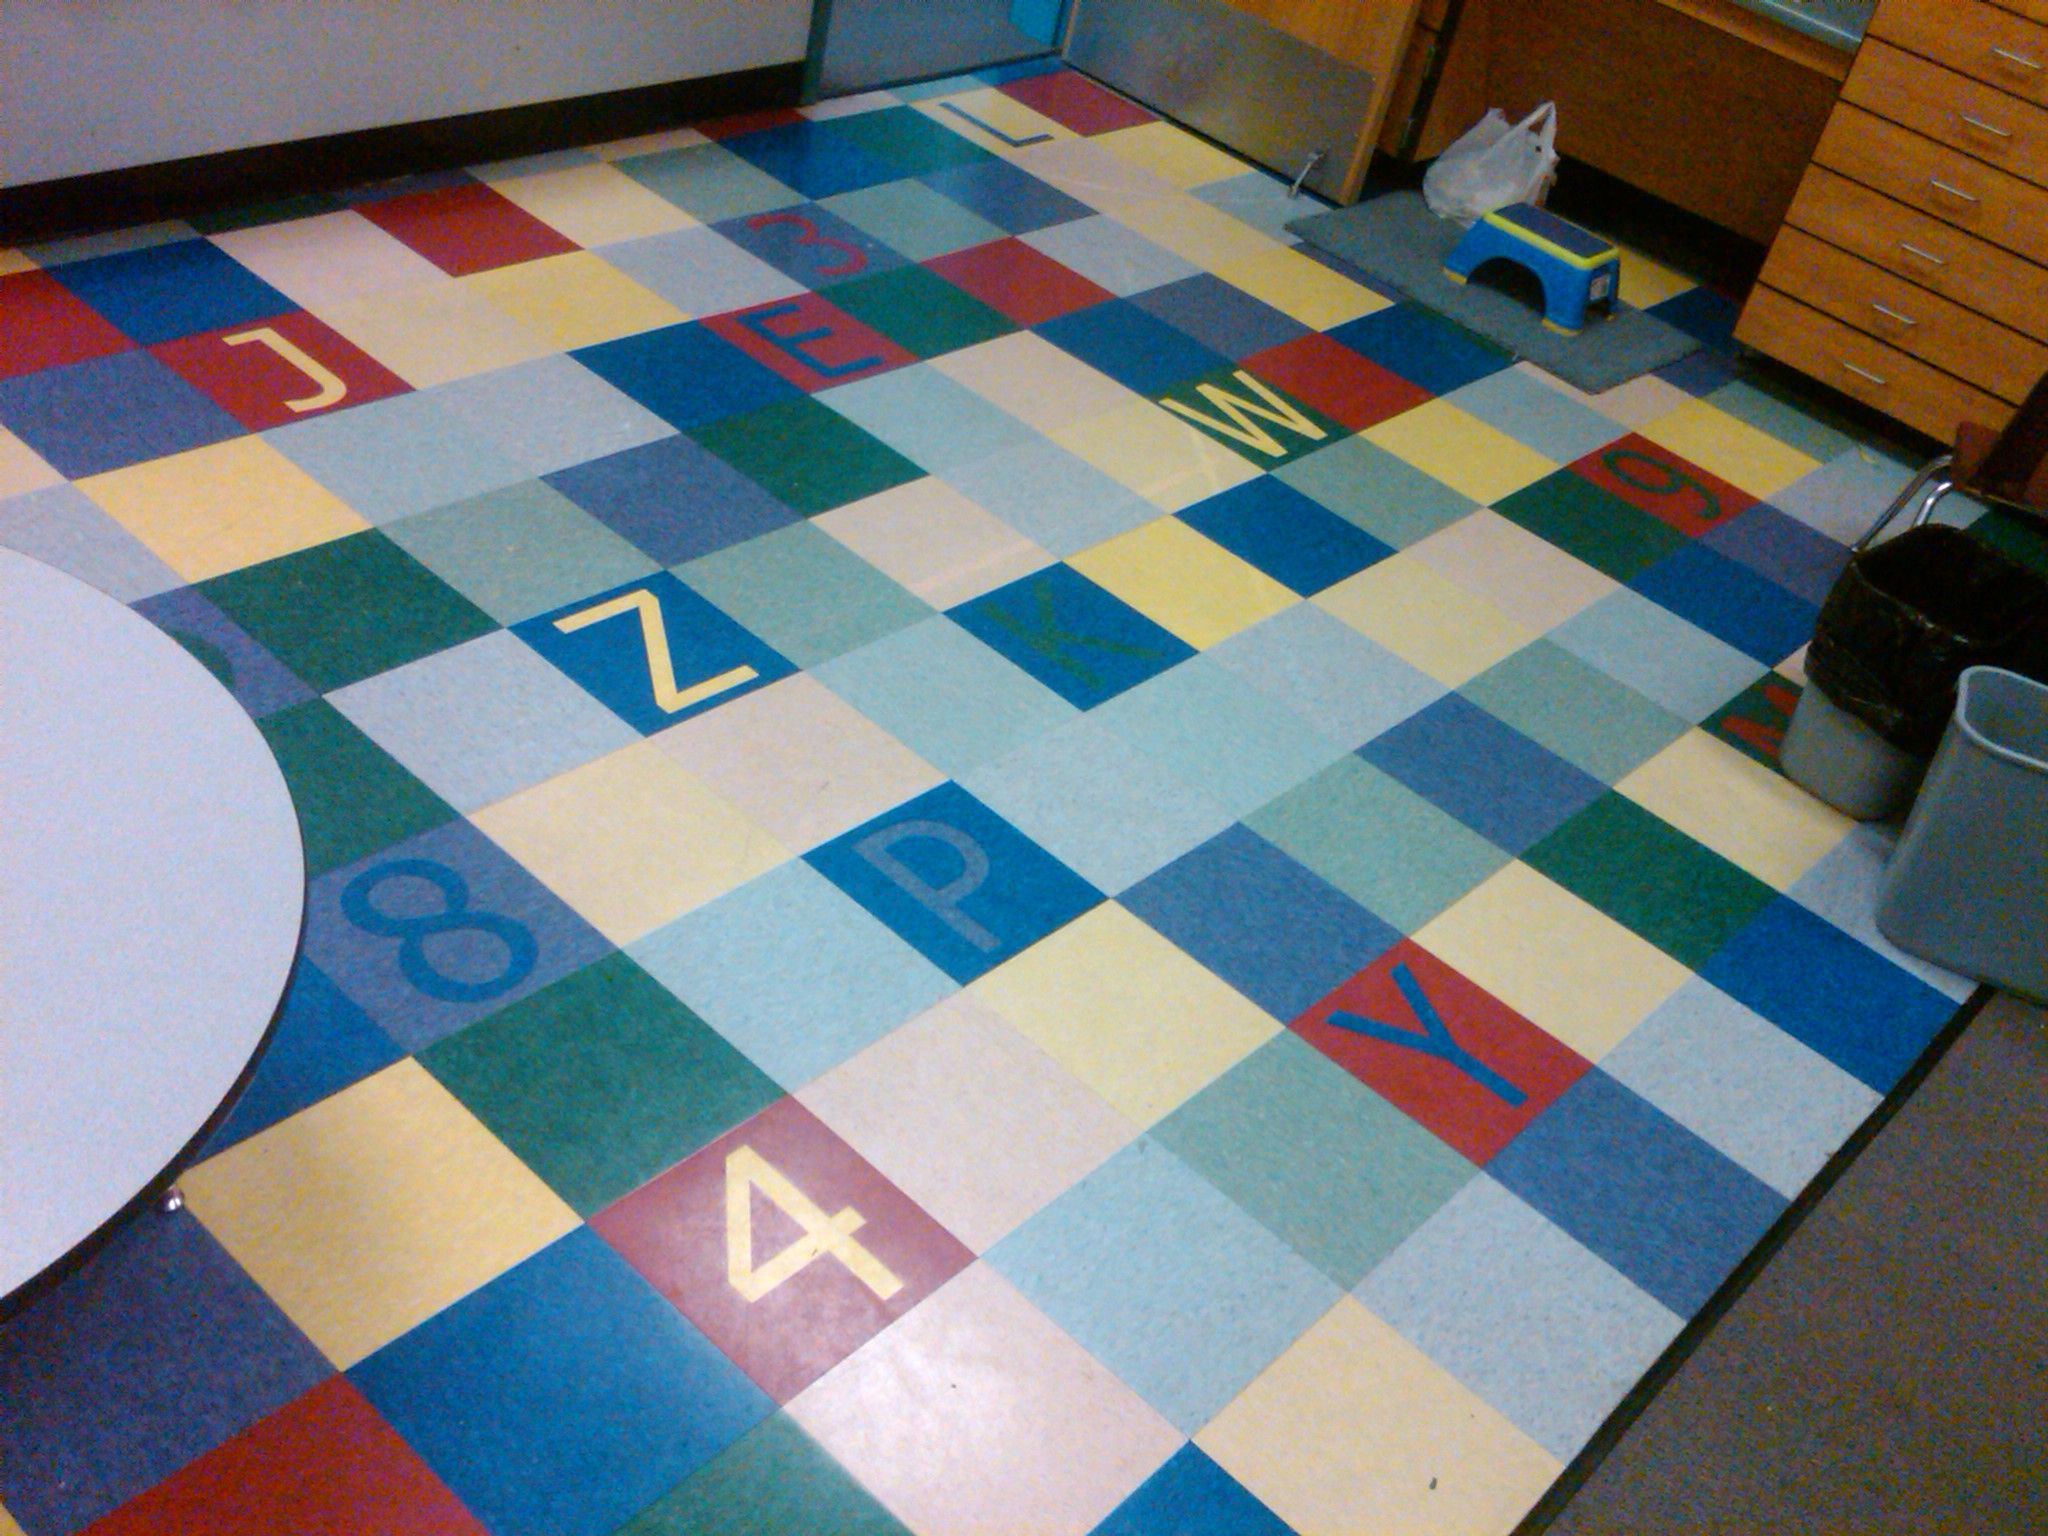 Elementary school specialty flooring by continental flooring company elementary school specialty flooring by continental flooring company government and commercial flooring contractors dailygadgetfo Choice Image